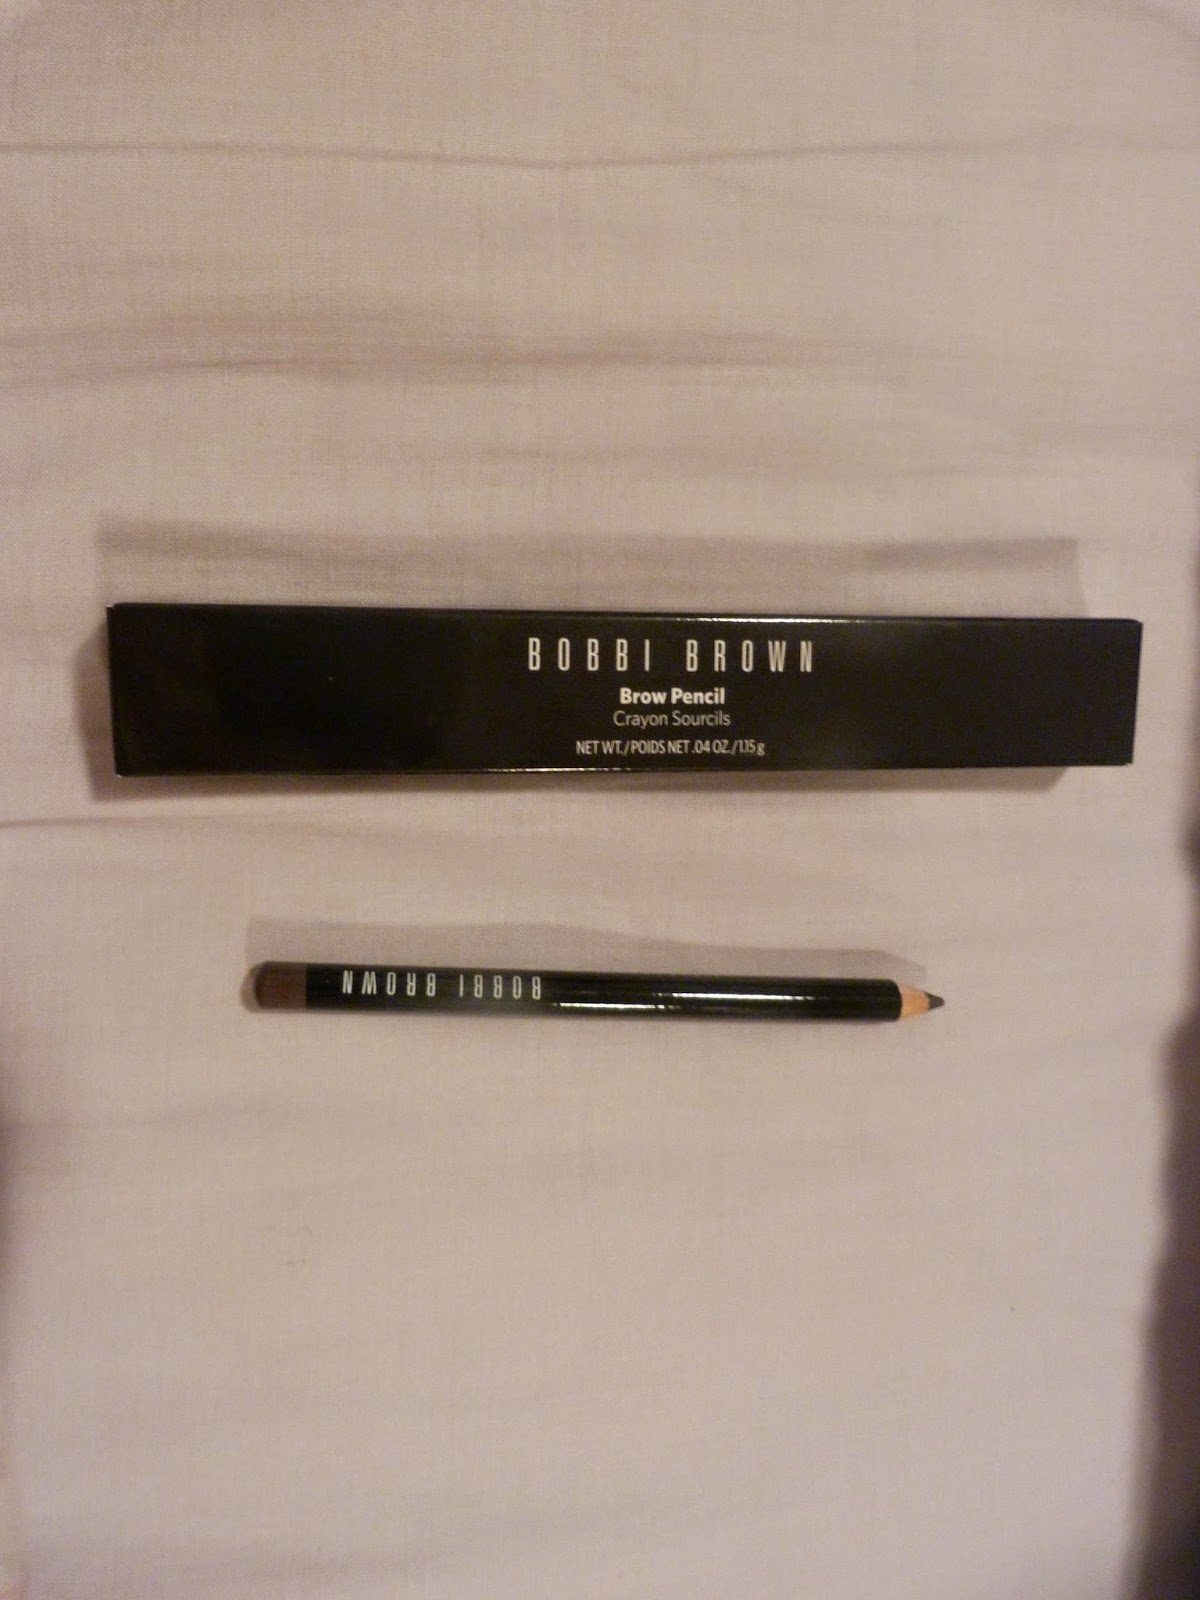 Bobbi Brown Brow Pencil - Brunette by The Makeup Junkie's Diary on ...